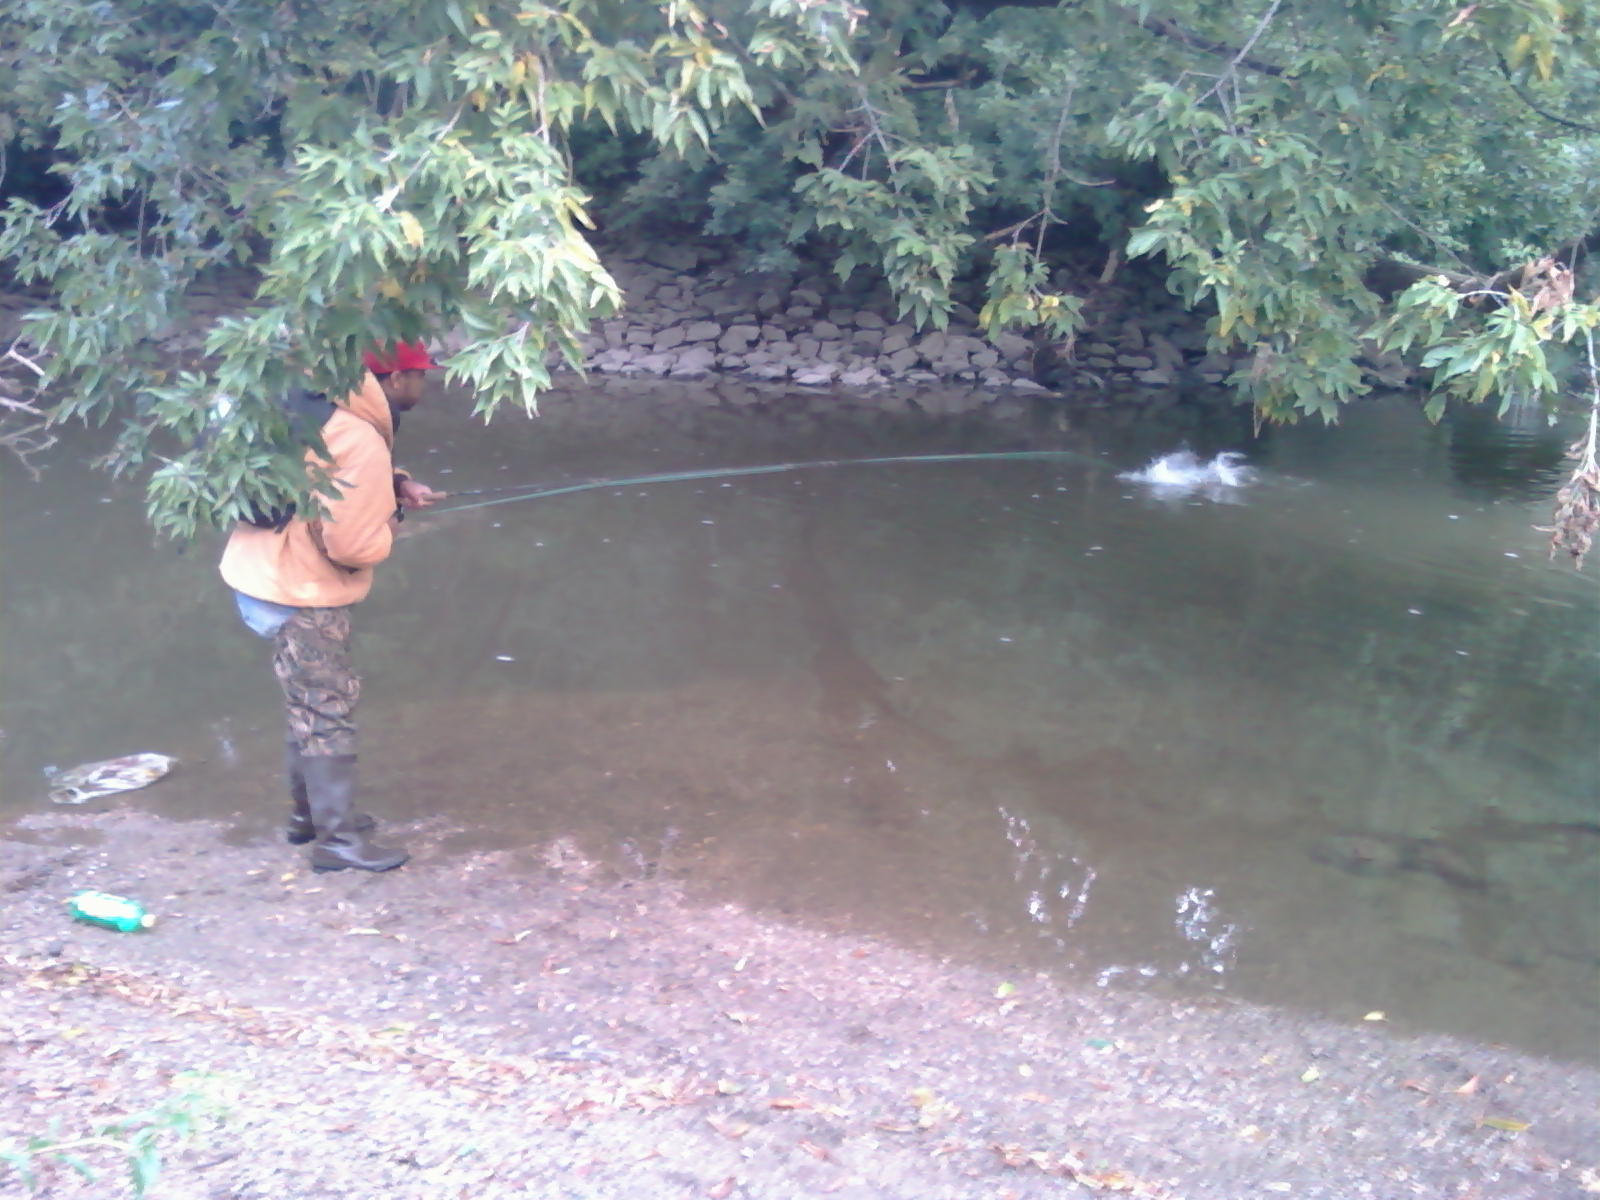 Illinois wisconsin fishing salmon fishing racine county wi for Salmon fishing wisconsin